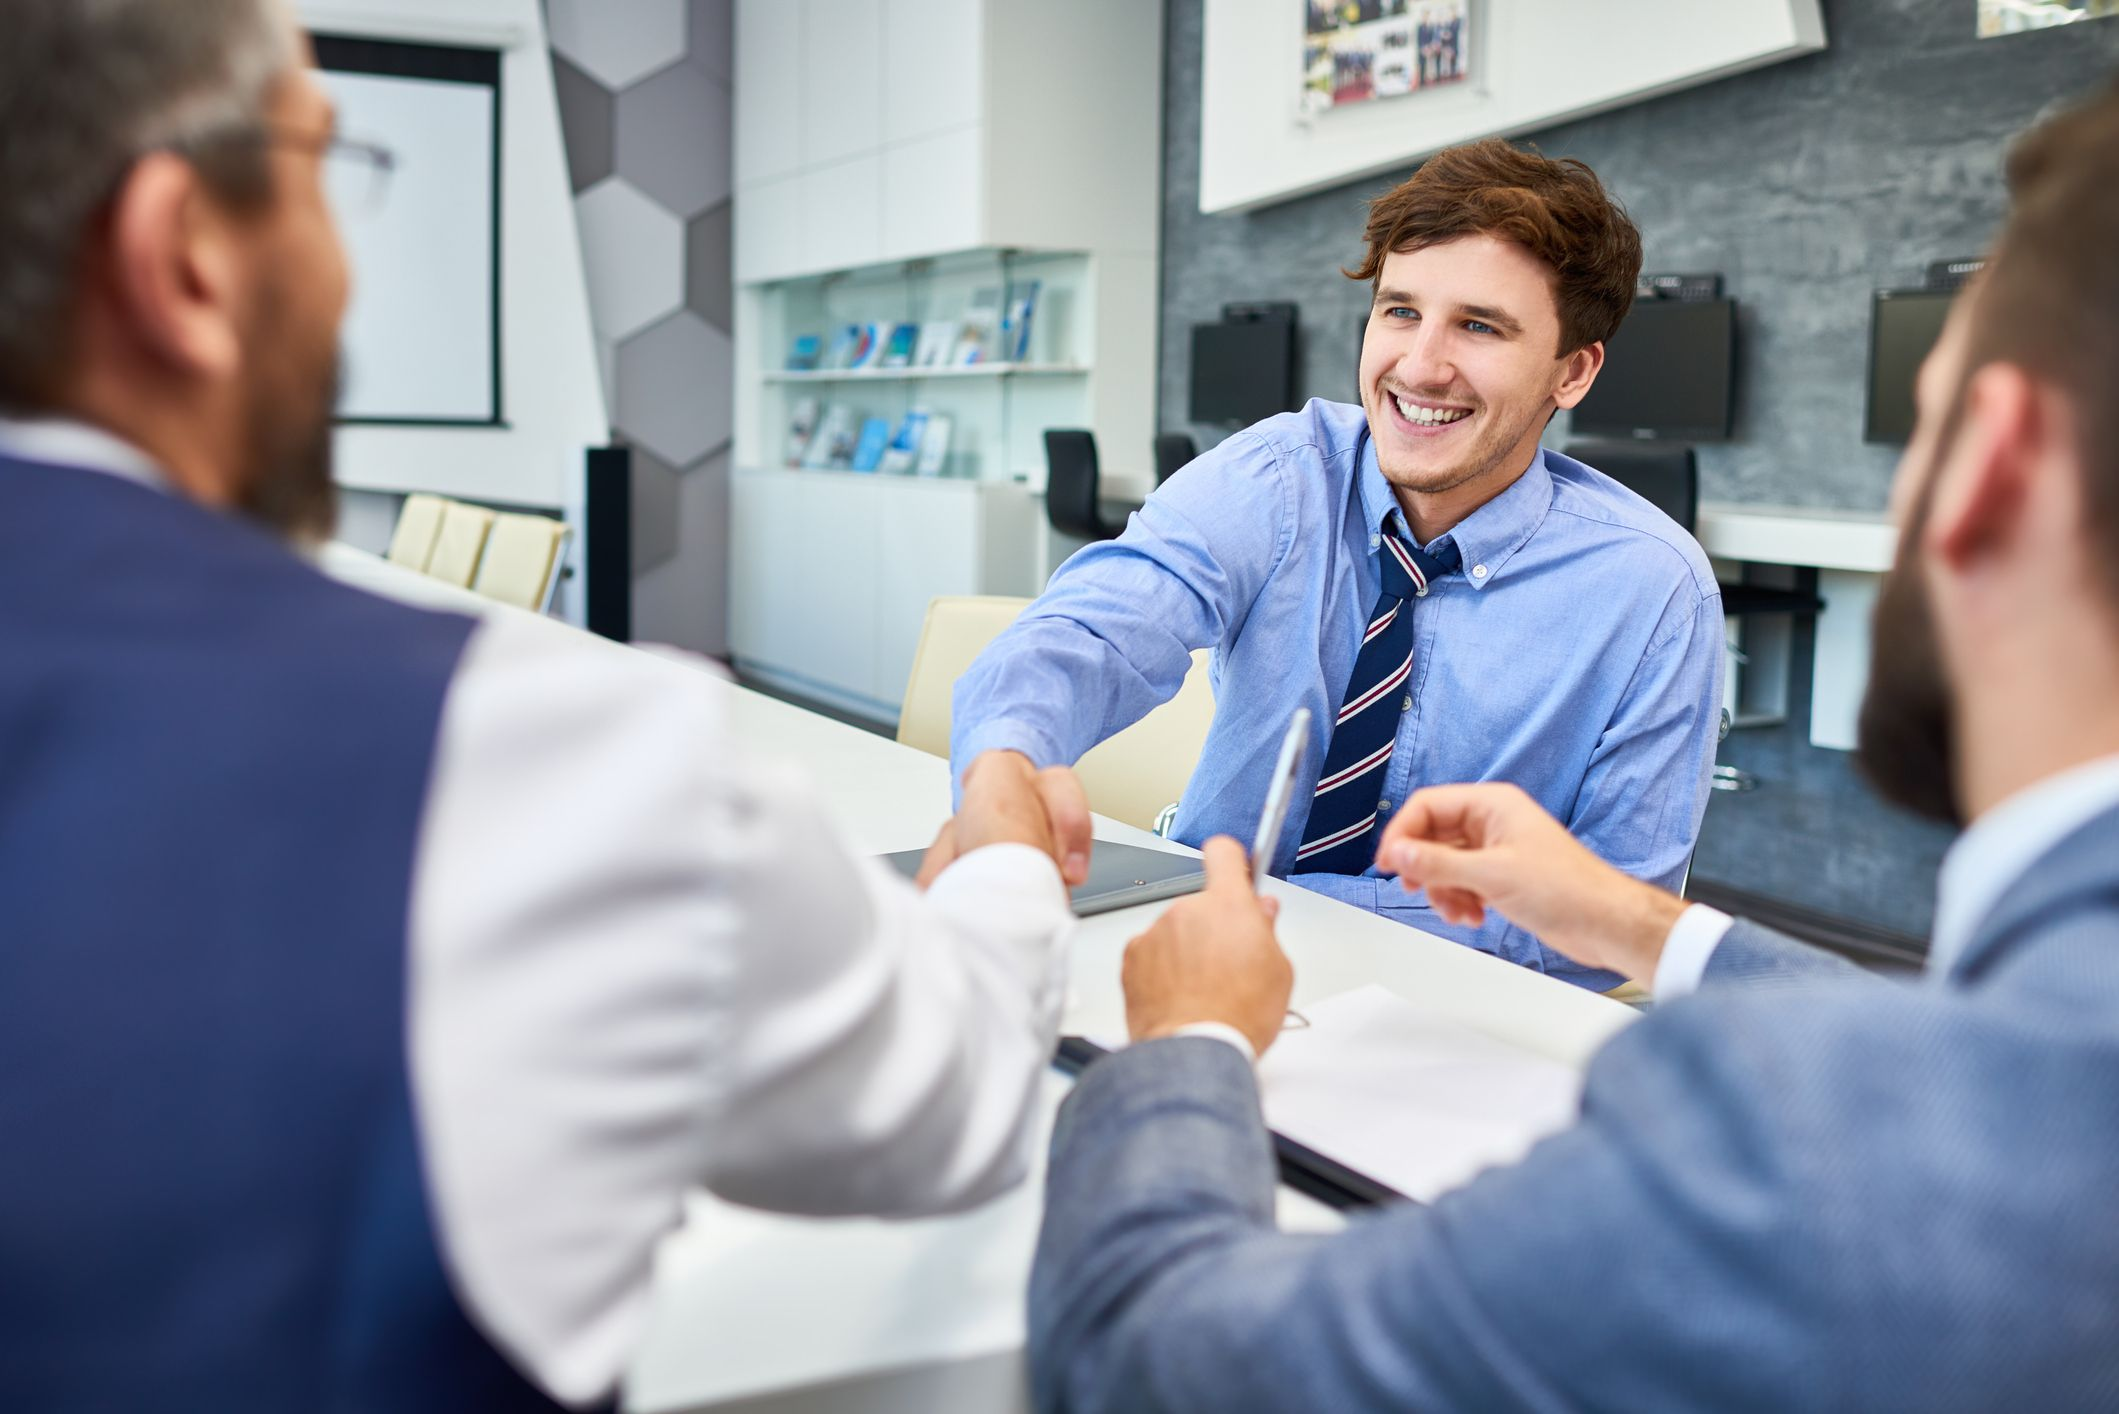 8 Tips For Making A Great First Impression In A Job Interview